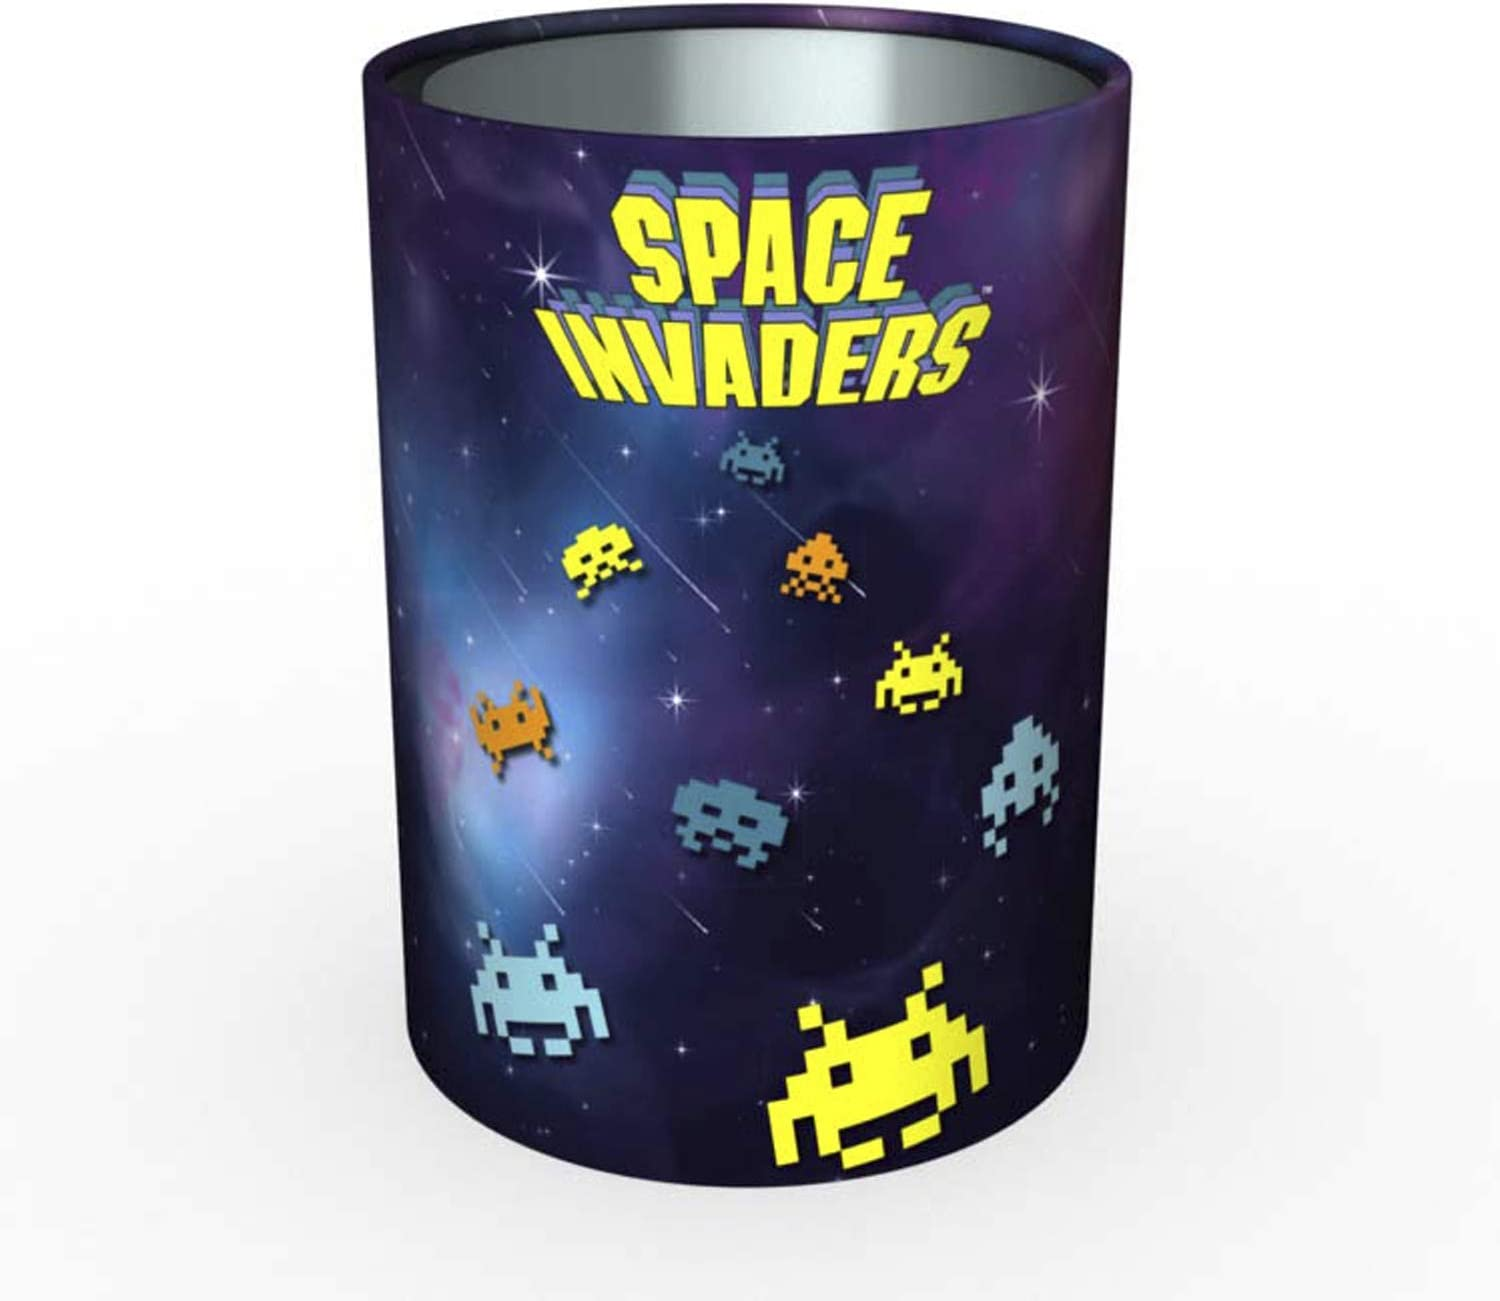 Quo Vadis Space invaders POT A CRAYONS METAL 8x8x10,5cm Cosmos